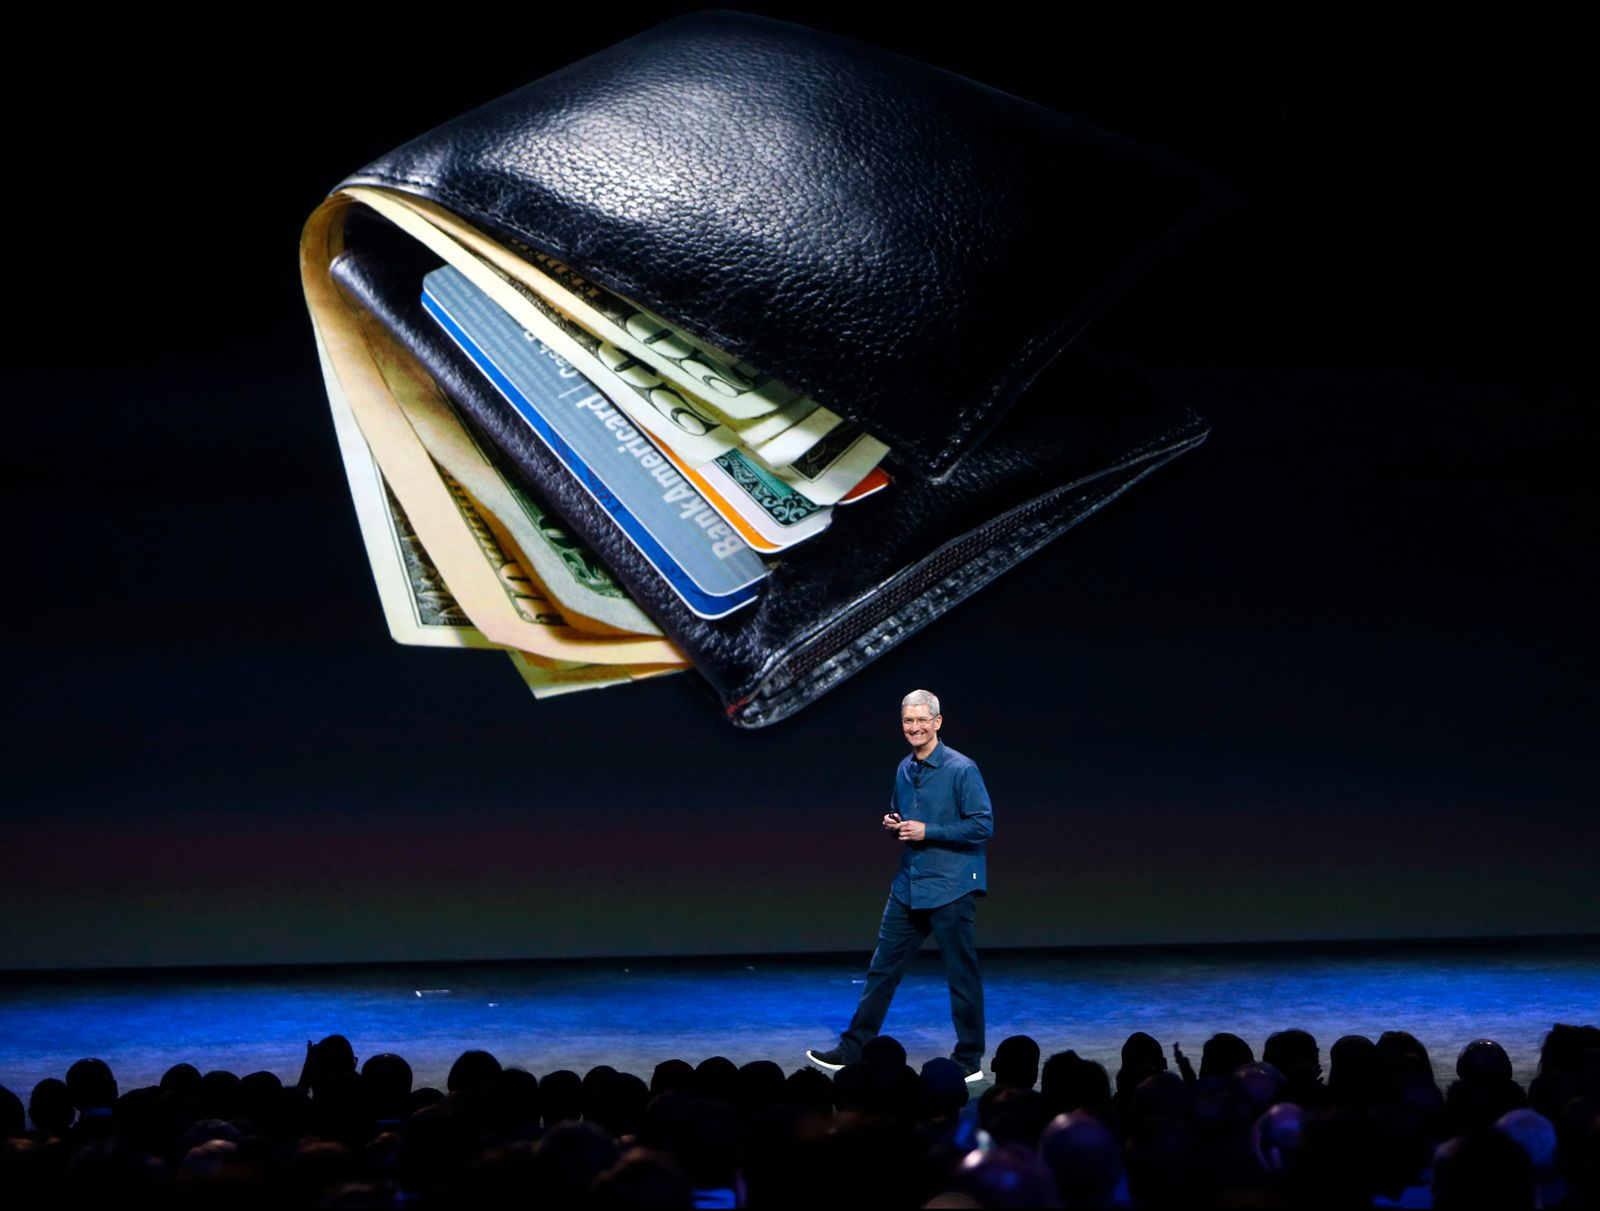 Apple CEO Tim Cook, standing in front of an image of bulging wallet, begins to describe a new way to pay, while introducing the iPhone 6 and the Apple Watch at the Flint Center in Cupertino, Calif., on Tuesday, Sept. 9, 2014. (Karl Mondon/Bay Area News